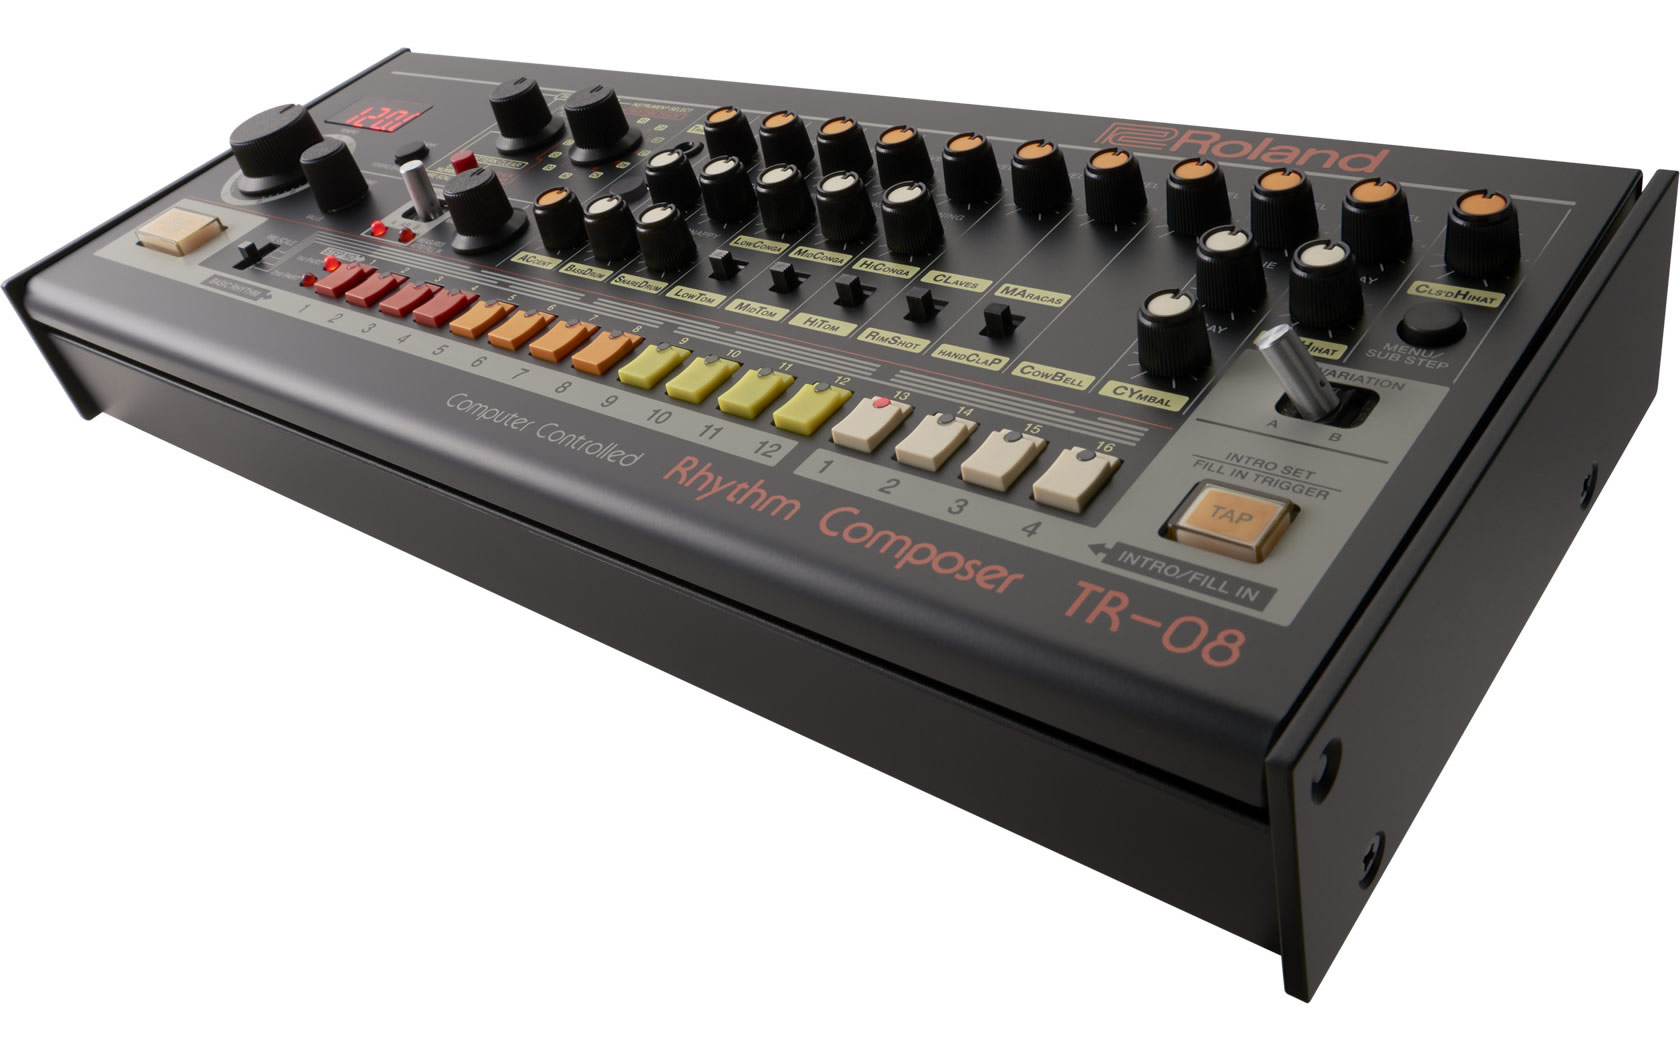 Roland Tr 08 Rhythm Composer O View Topic Building A Control Panel With Led Route Indication